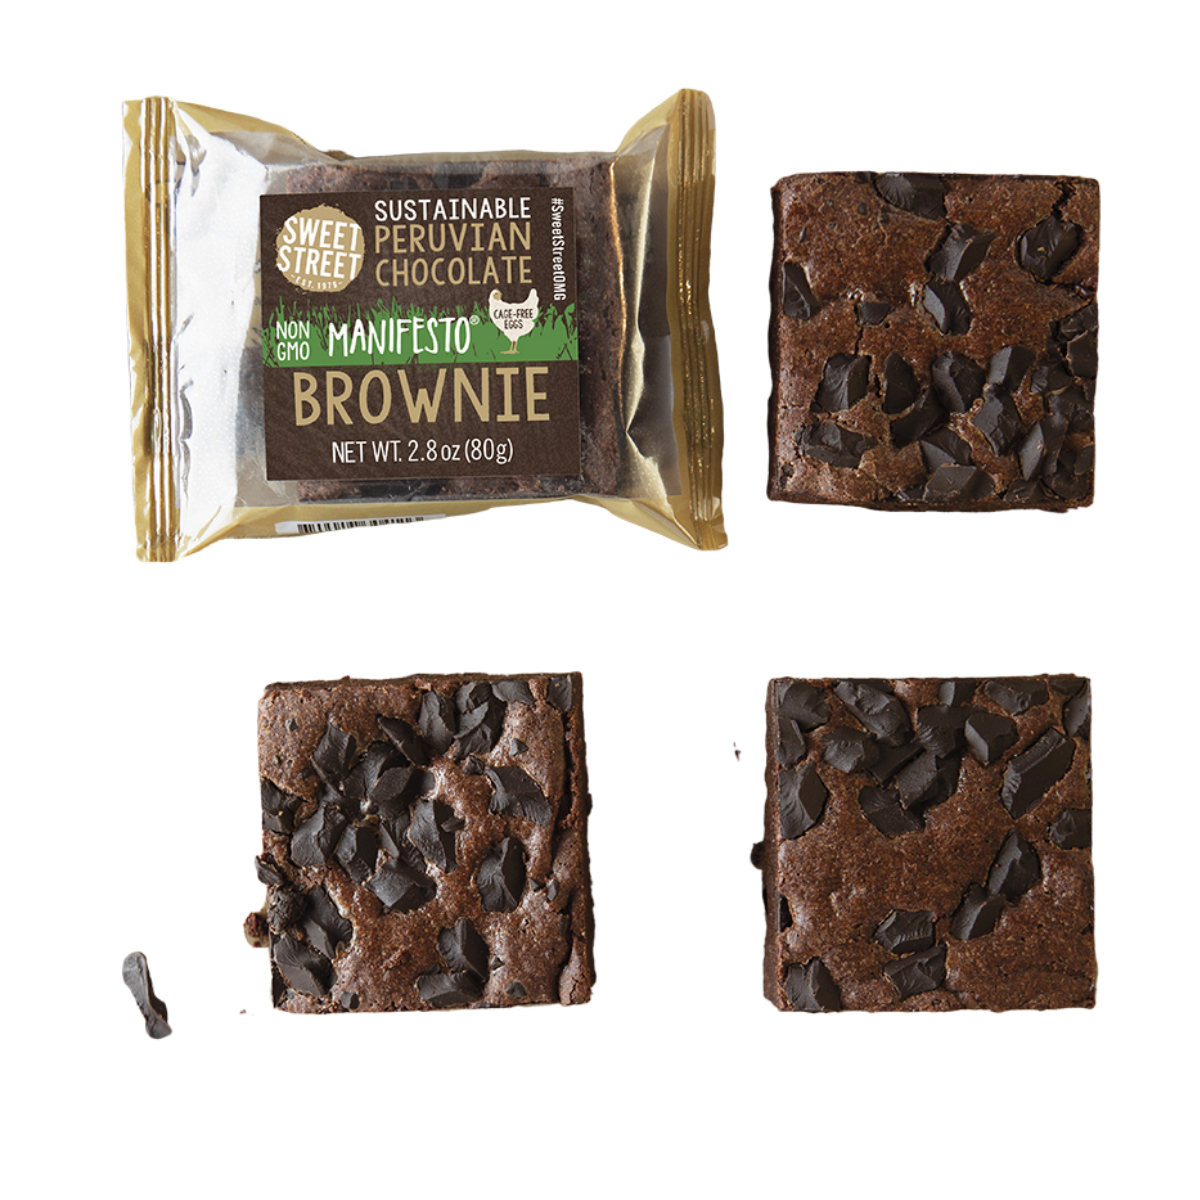 Sweet Street Peruvian Chocolate Manifesto Brownie